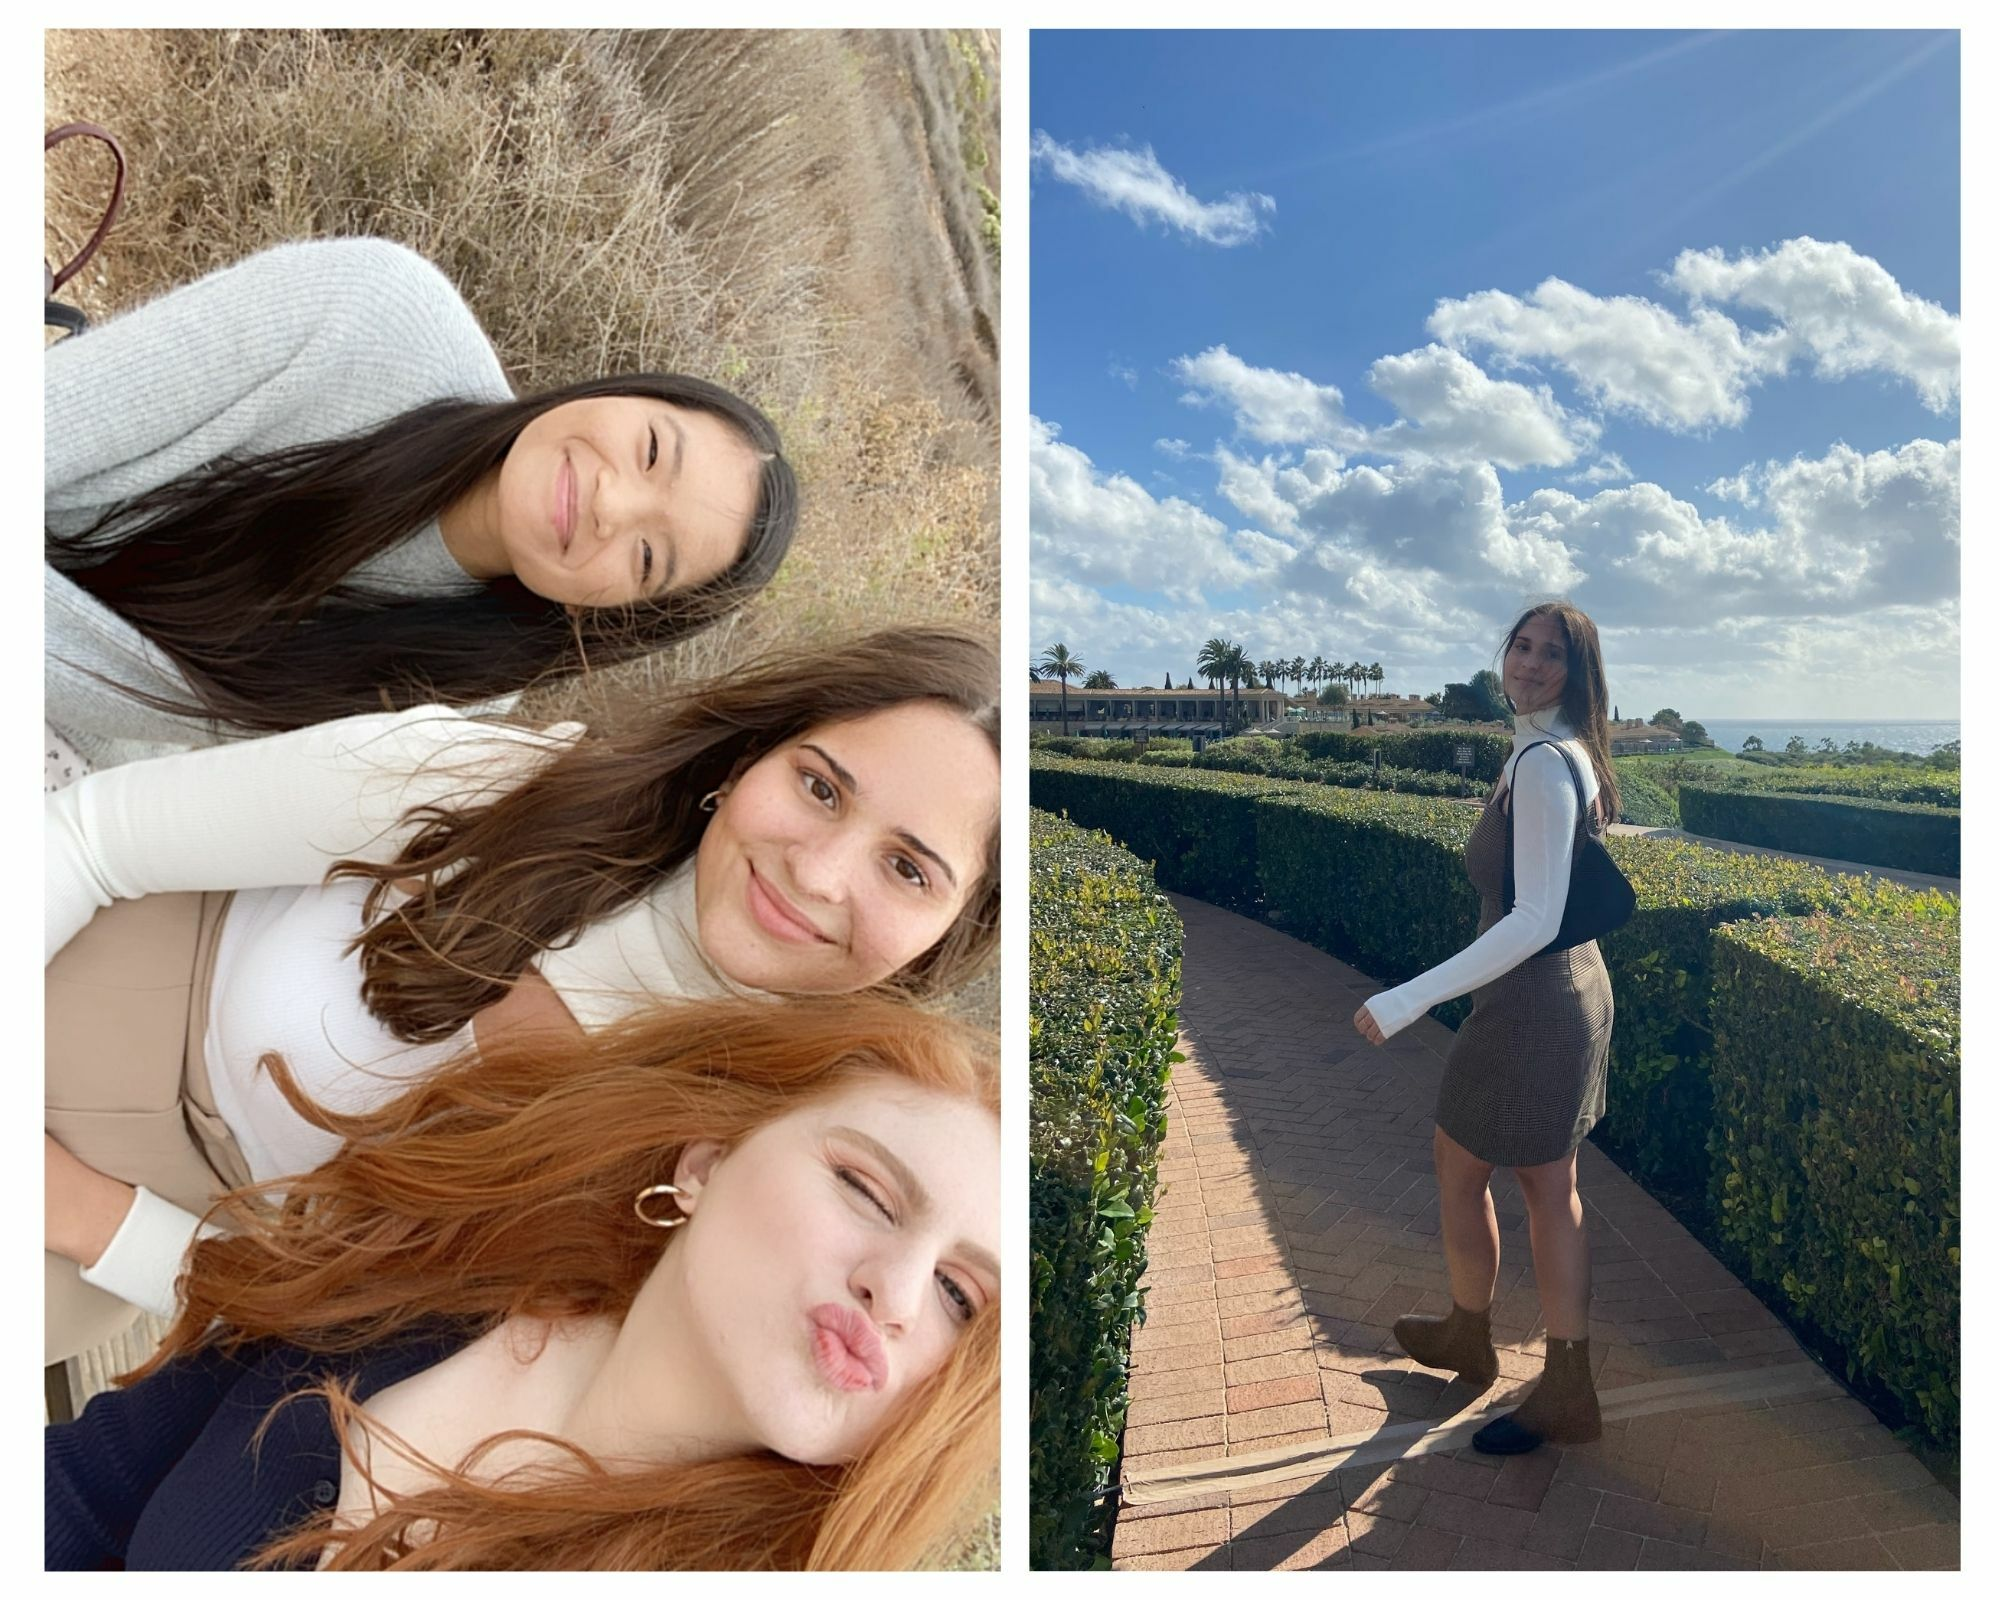 There's two photos in one: Maggie with her housemates/friends, and Maggie out in a garden on a walk.